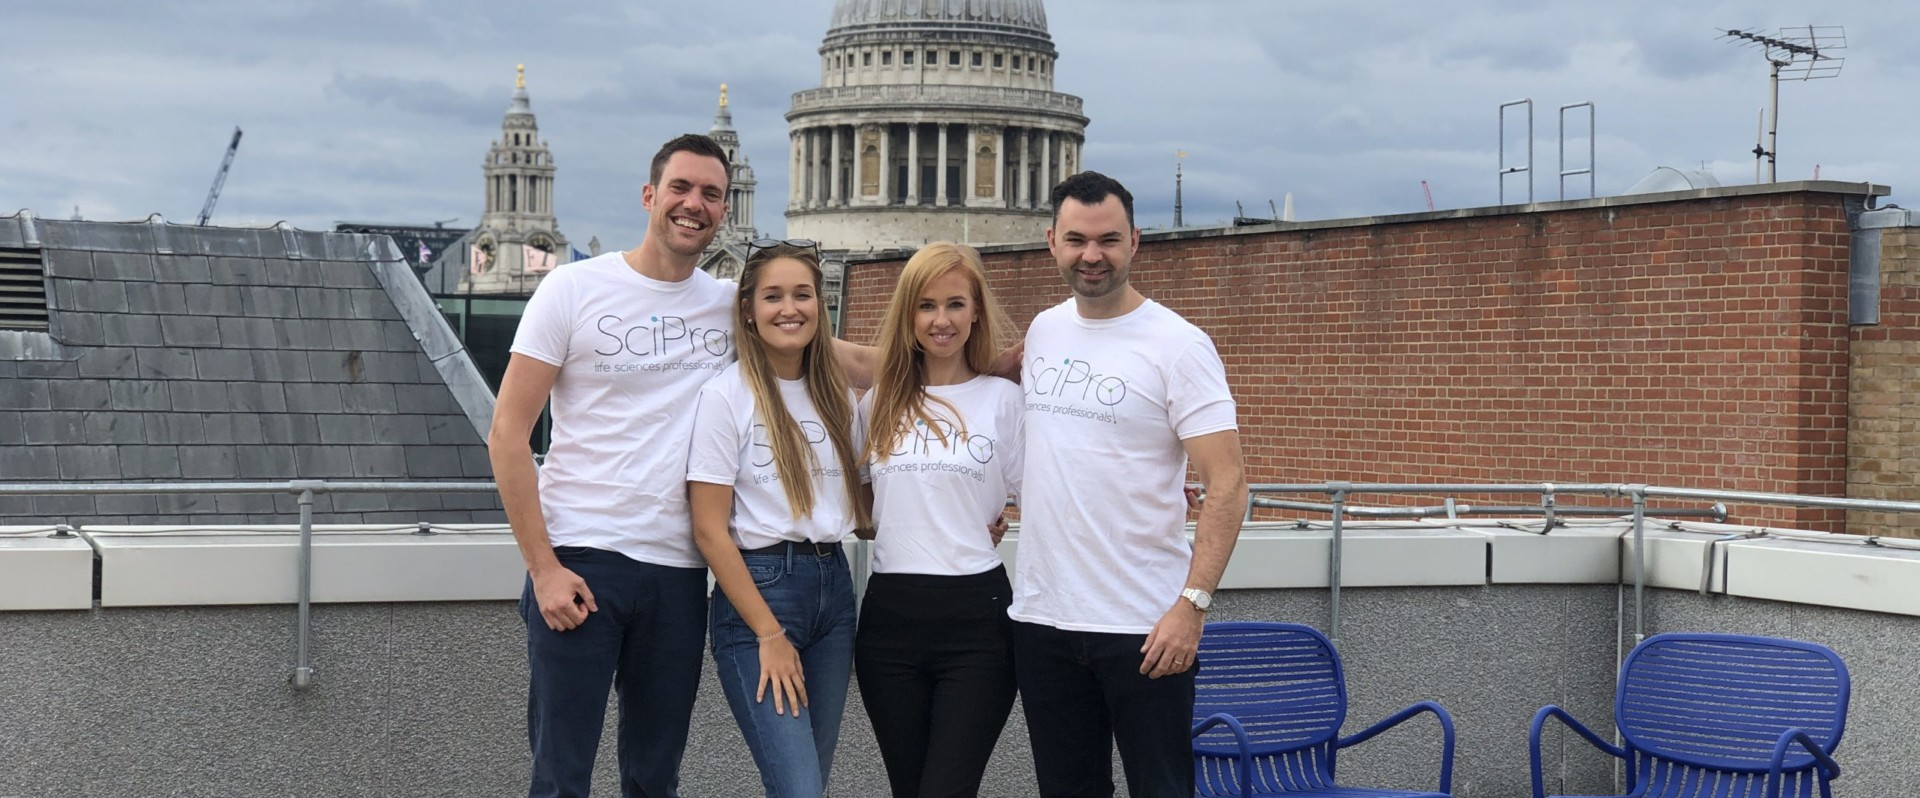 Group of people stood on a rooftop, wearing SciPro t-shirts, smiling at camera